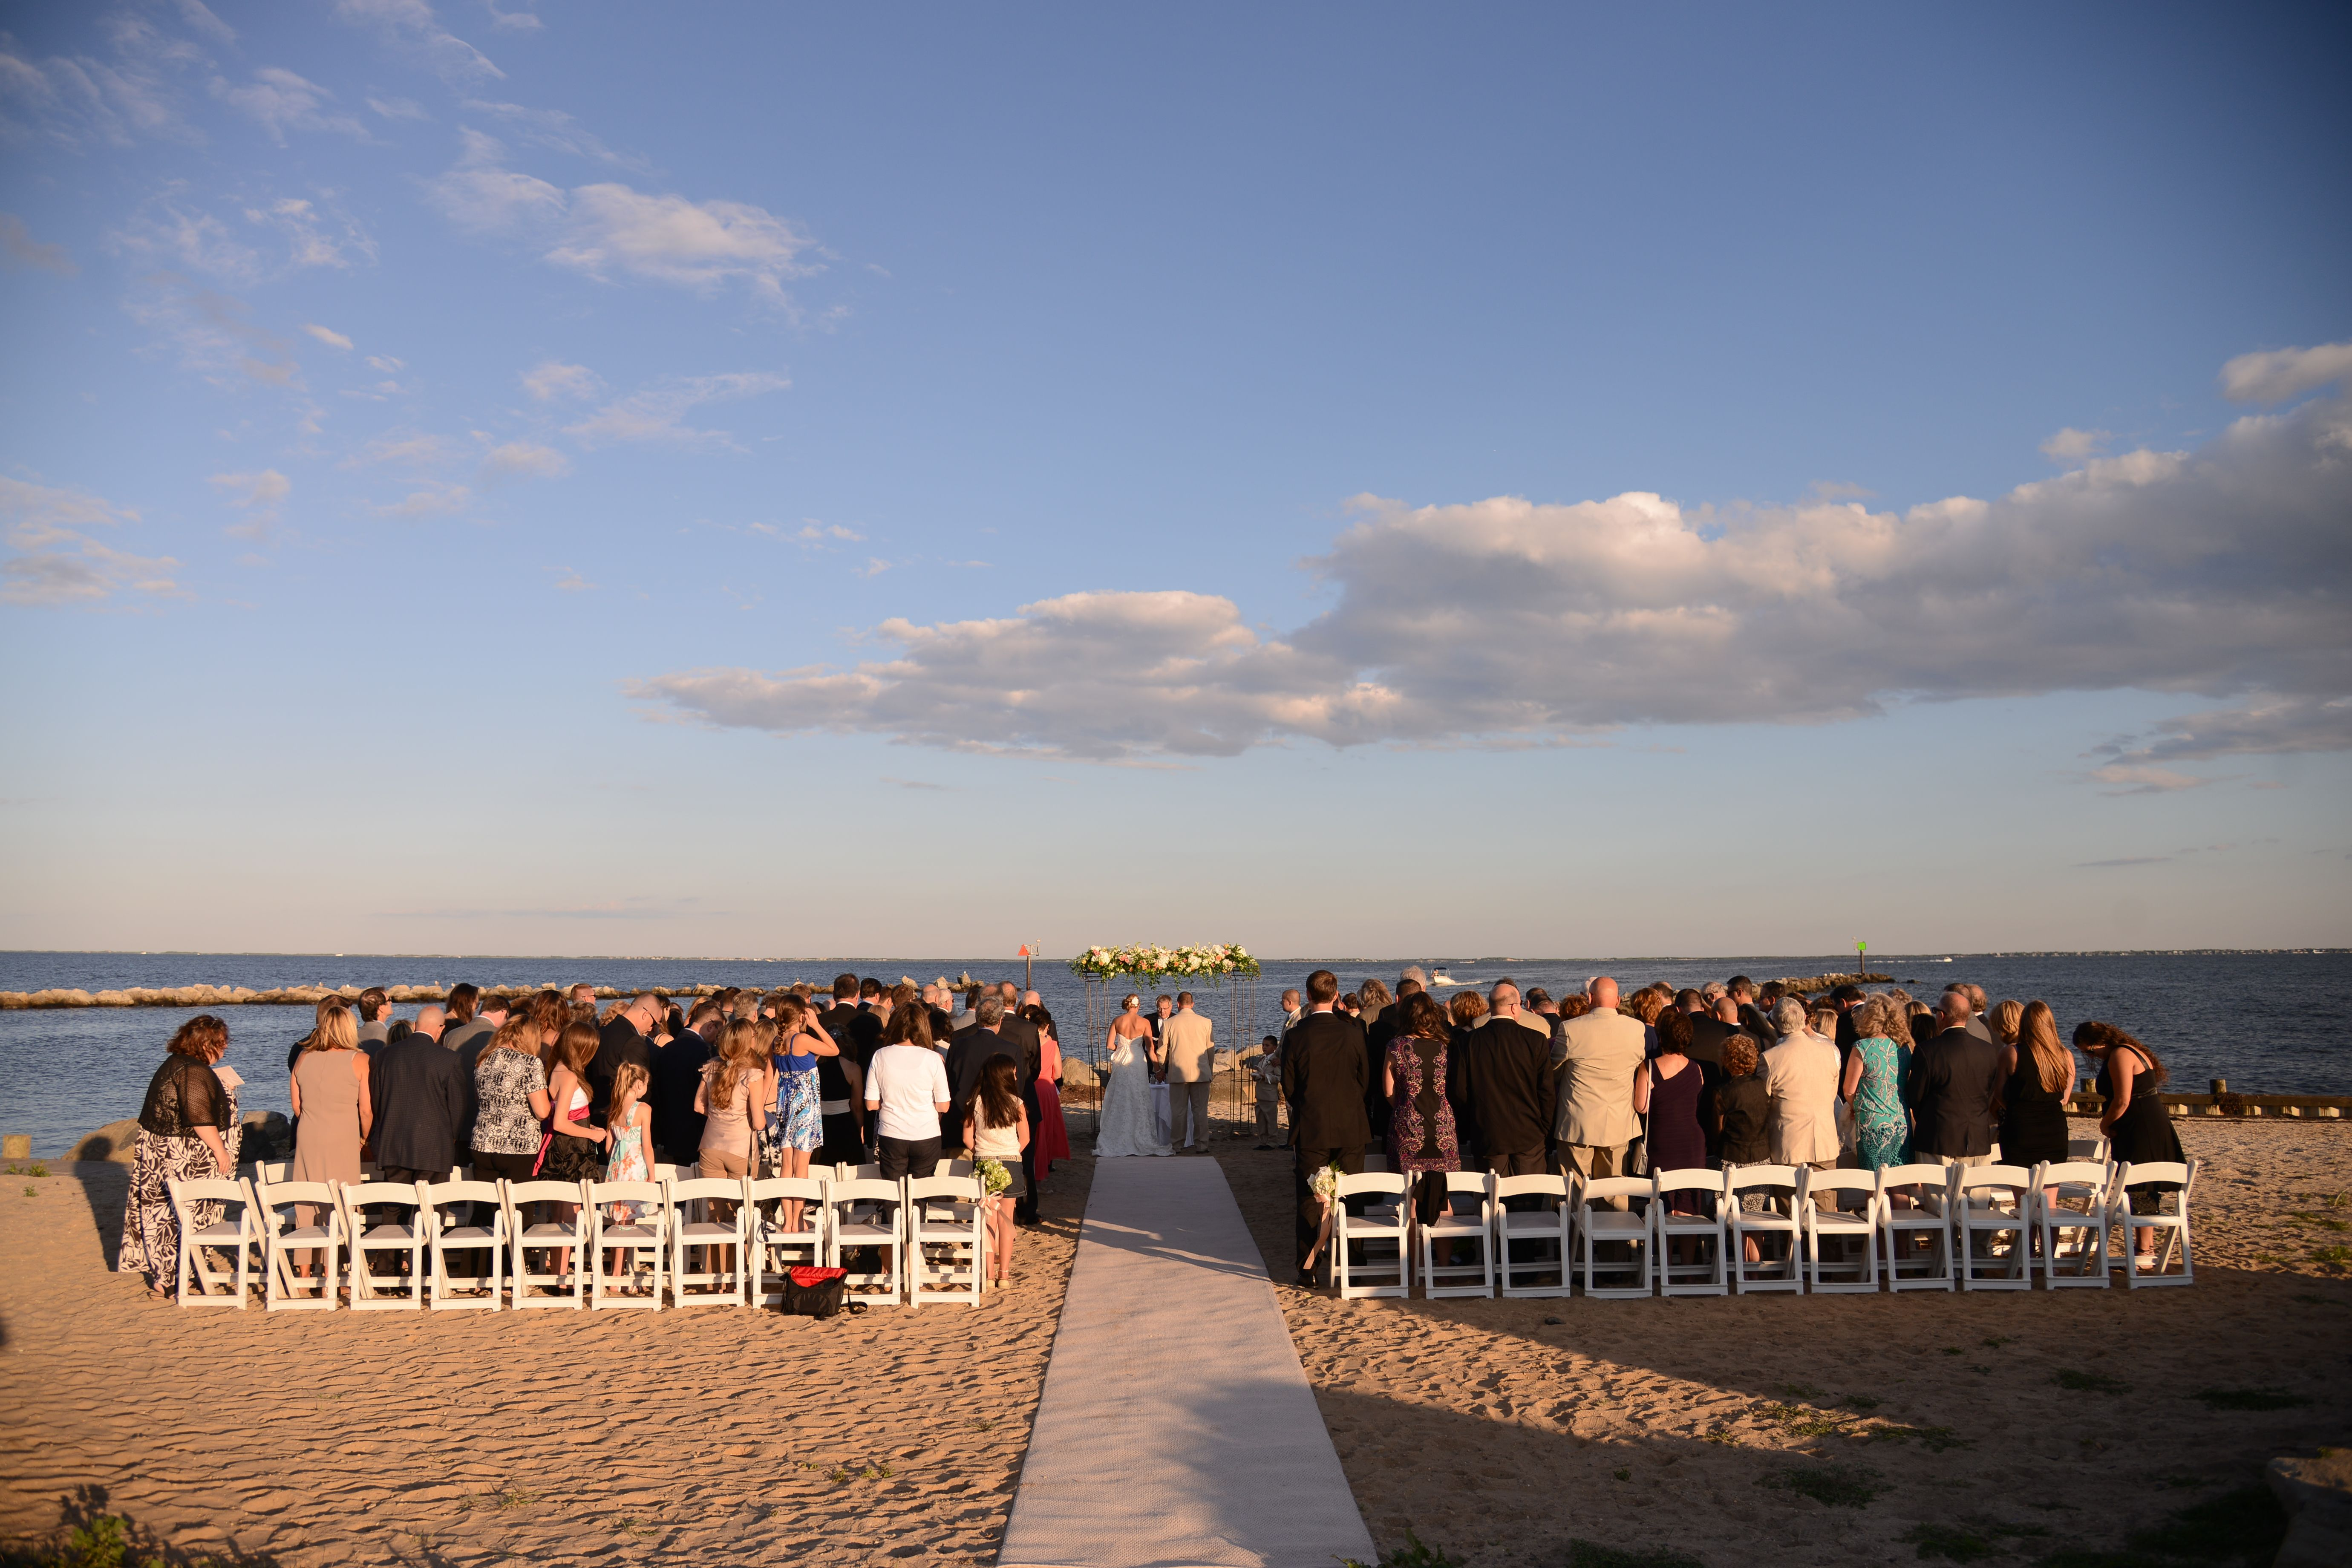 Lands End Beach Ceremony Overlooking The Great South Bay Long Island Wedding Venue